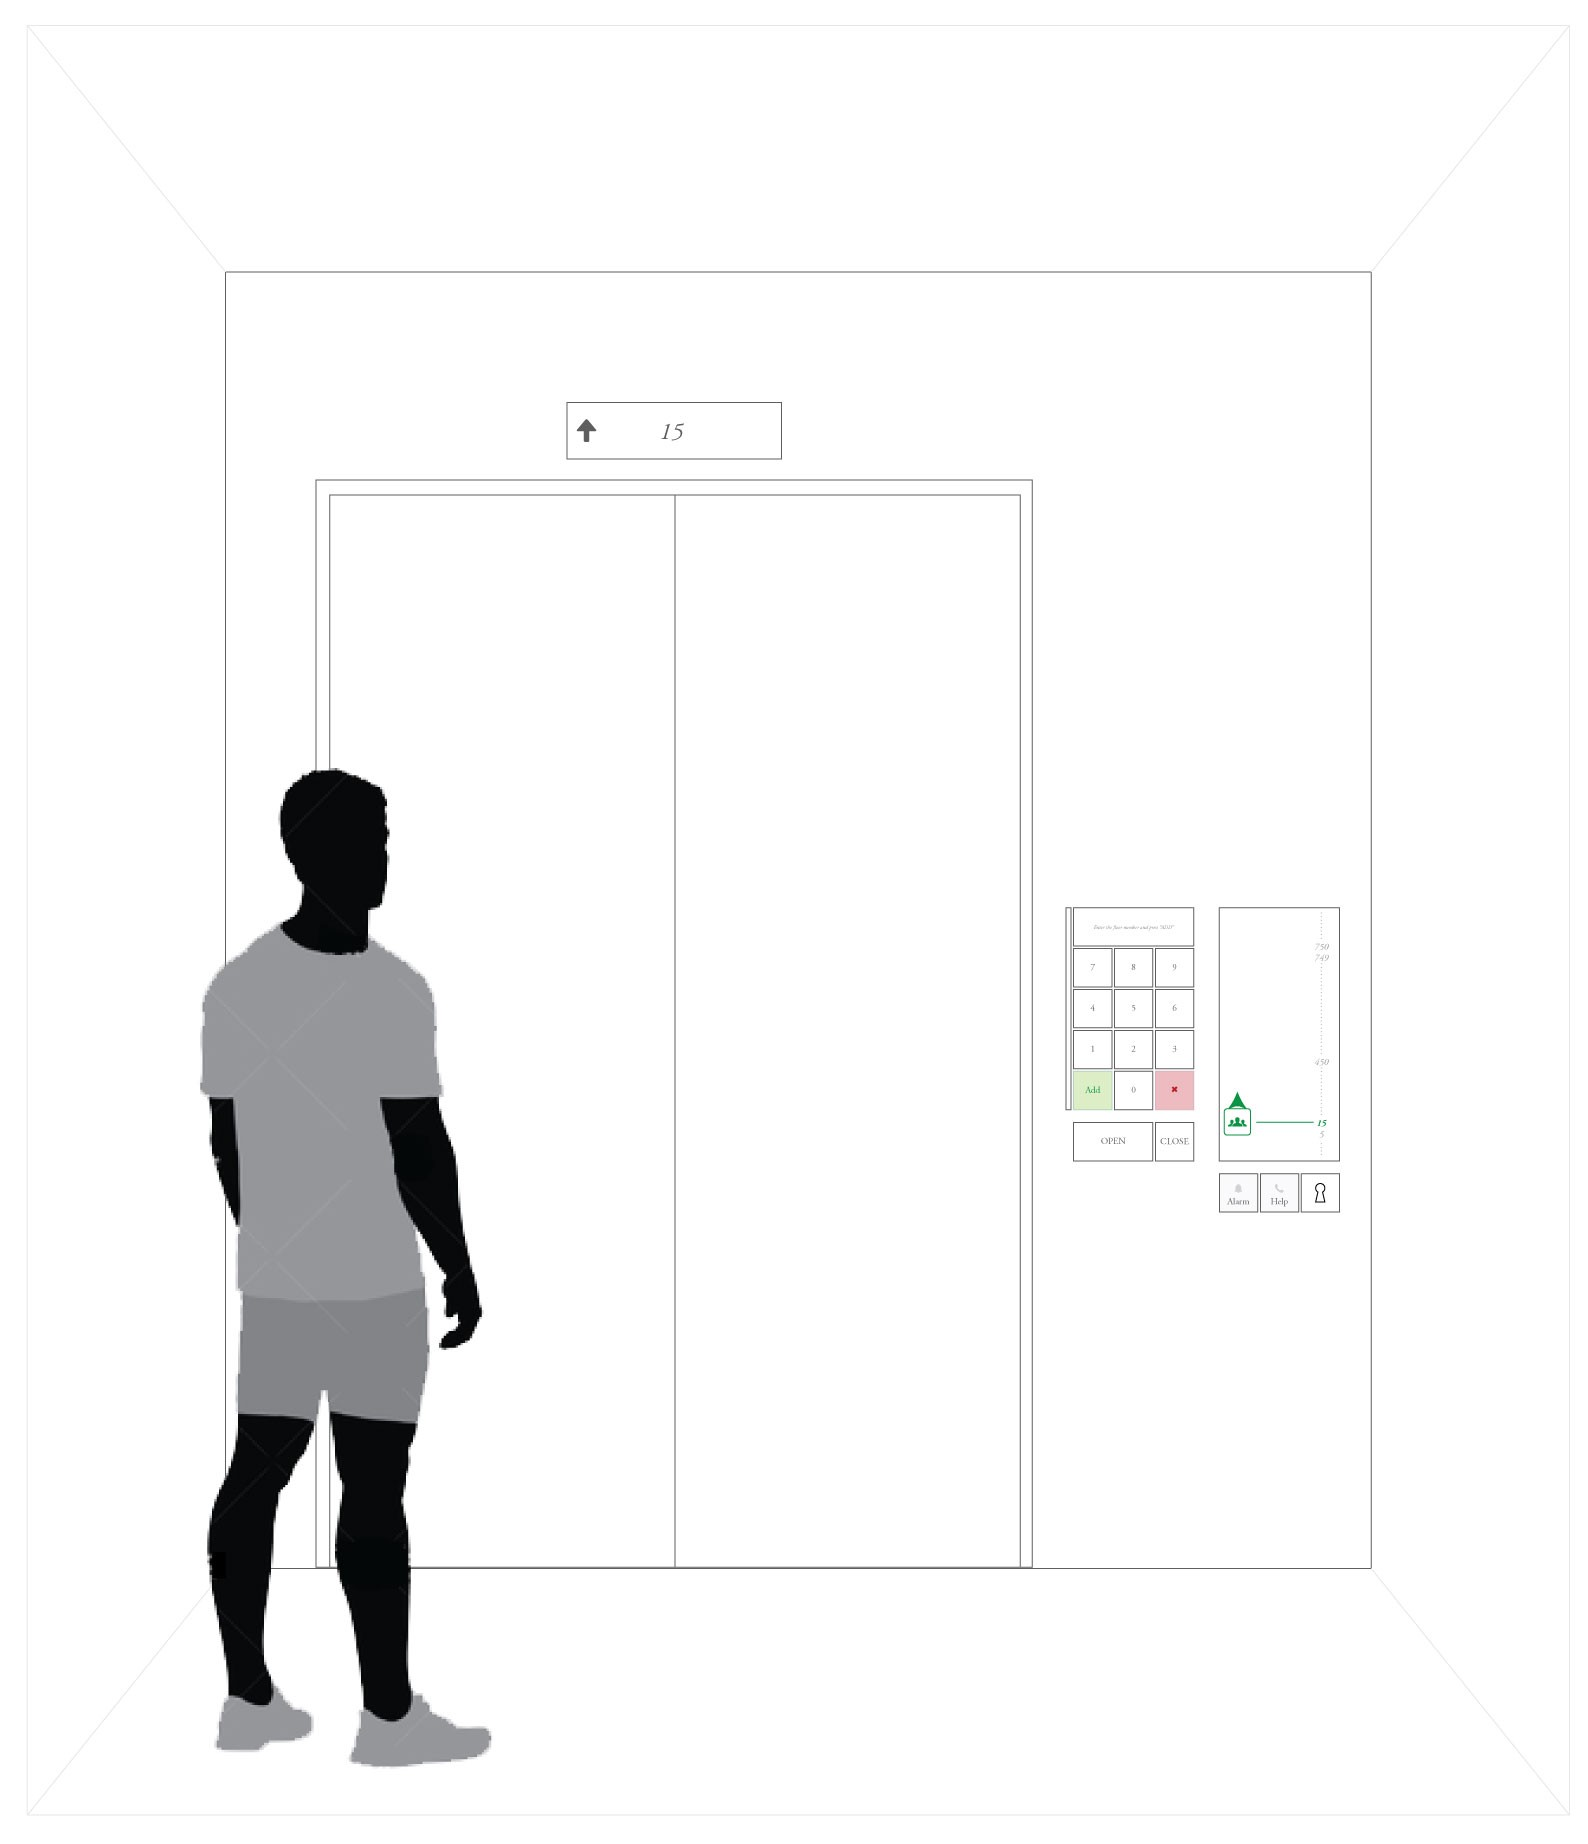 How would you design an interface for a 1000 floor elevator?